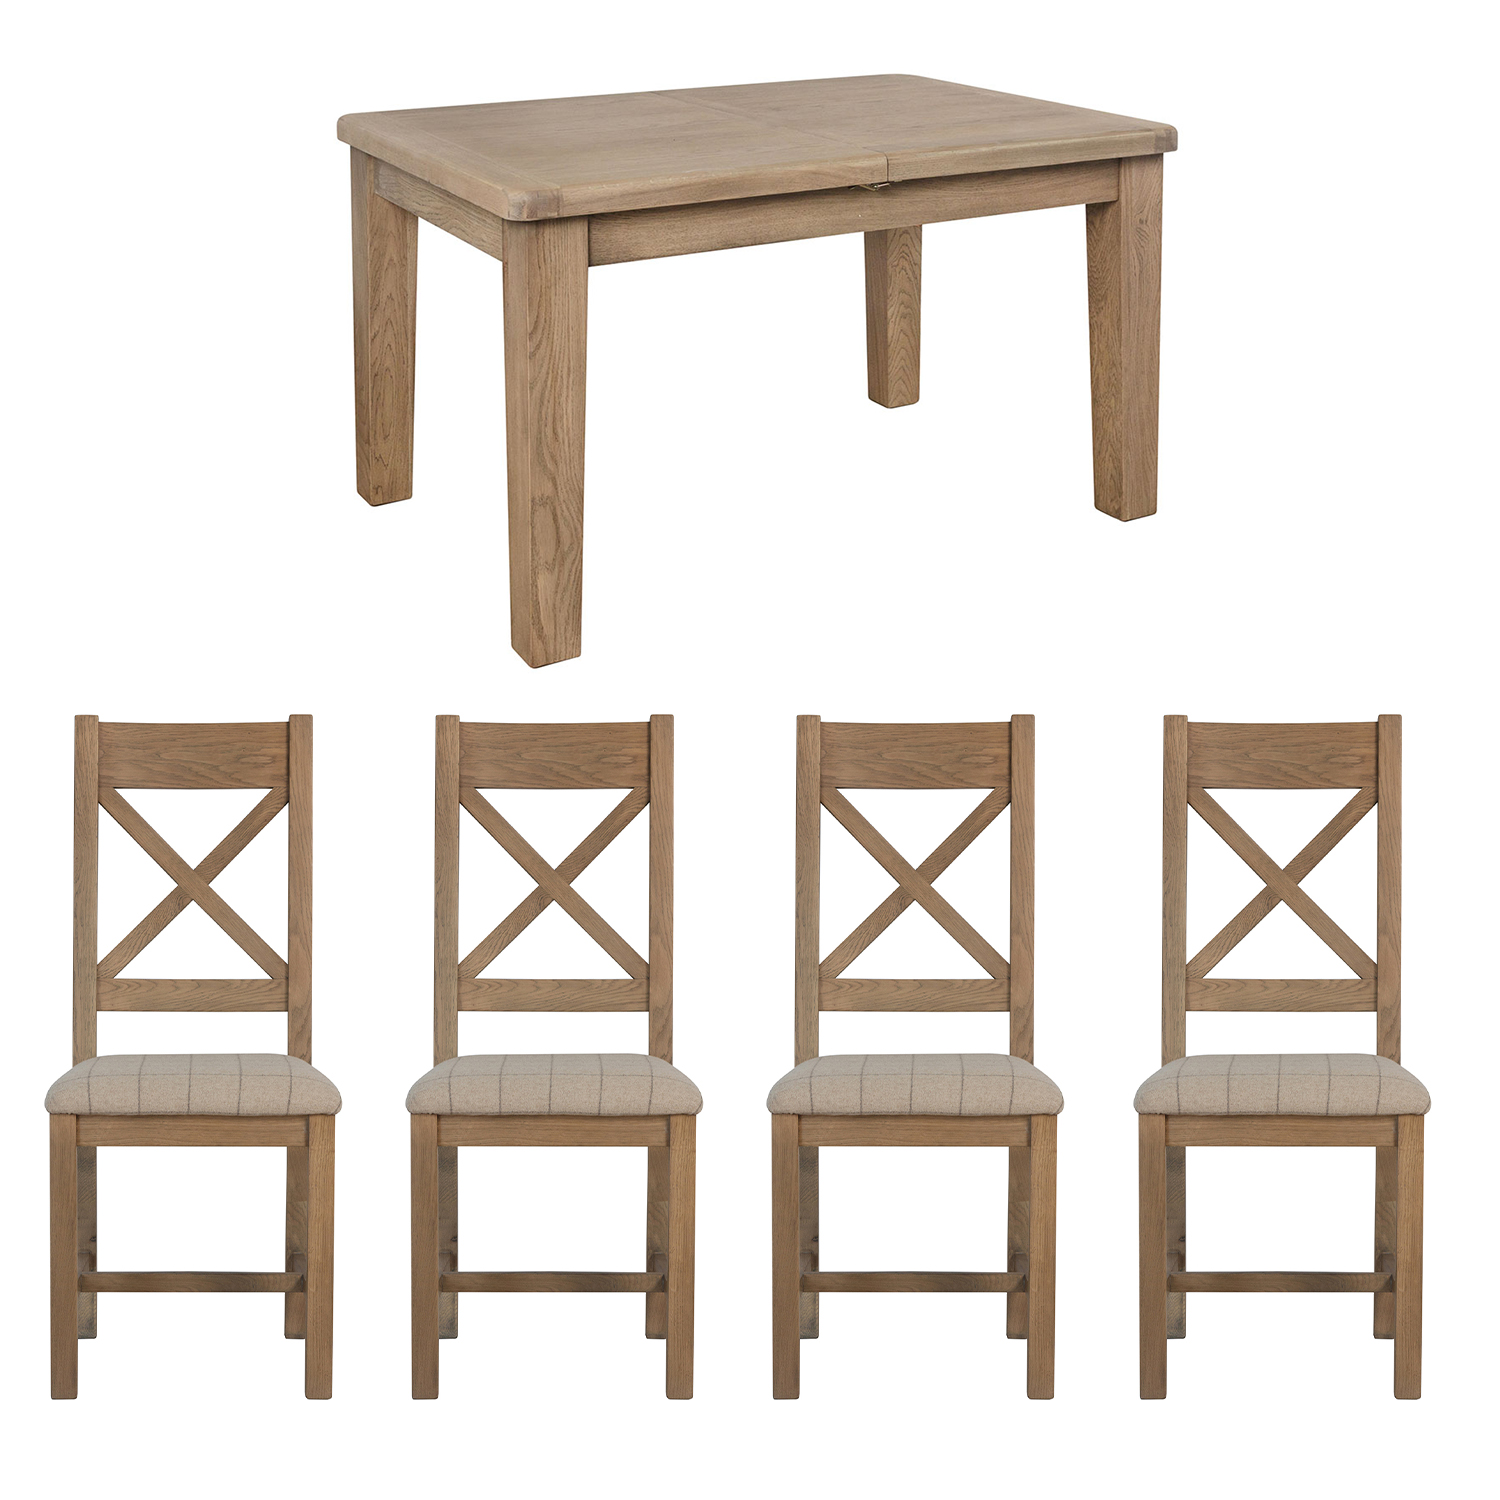 Heritage Oak 1.3m Table and x4 Cross Back Natural Chairs Set